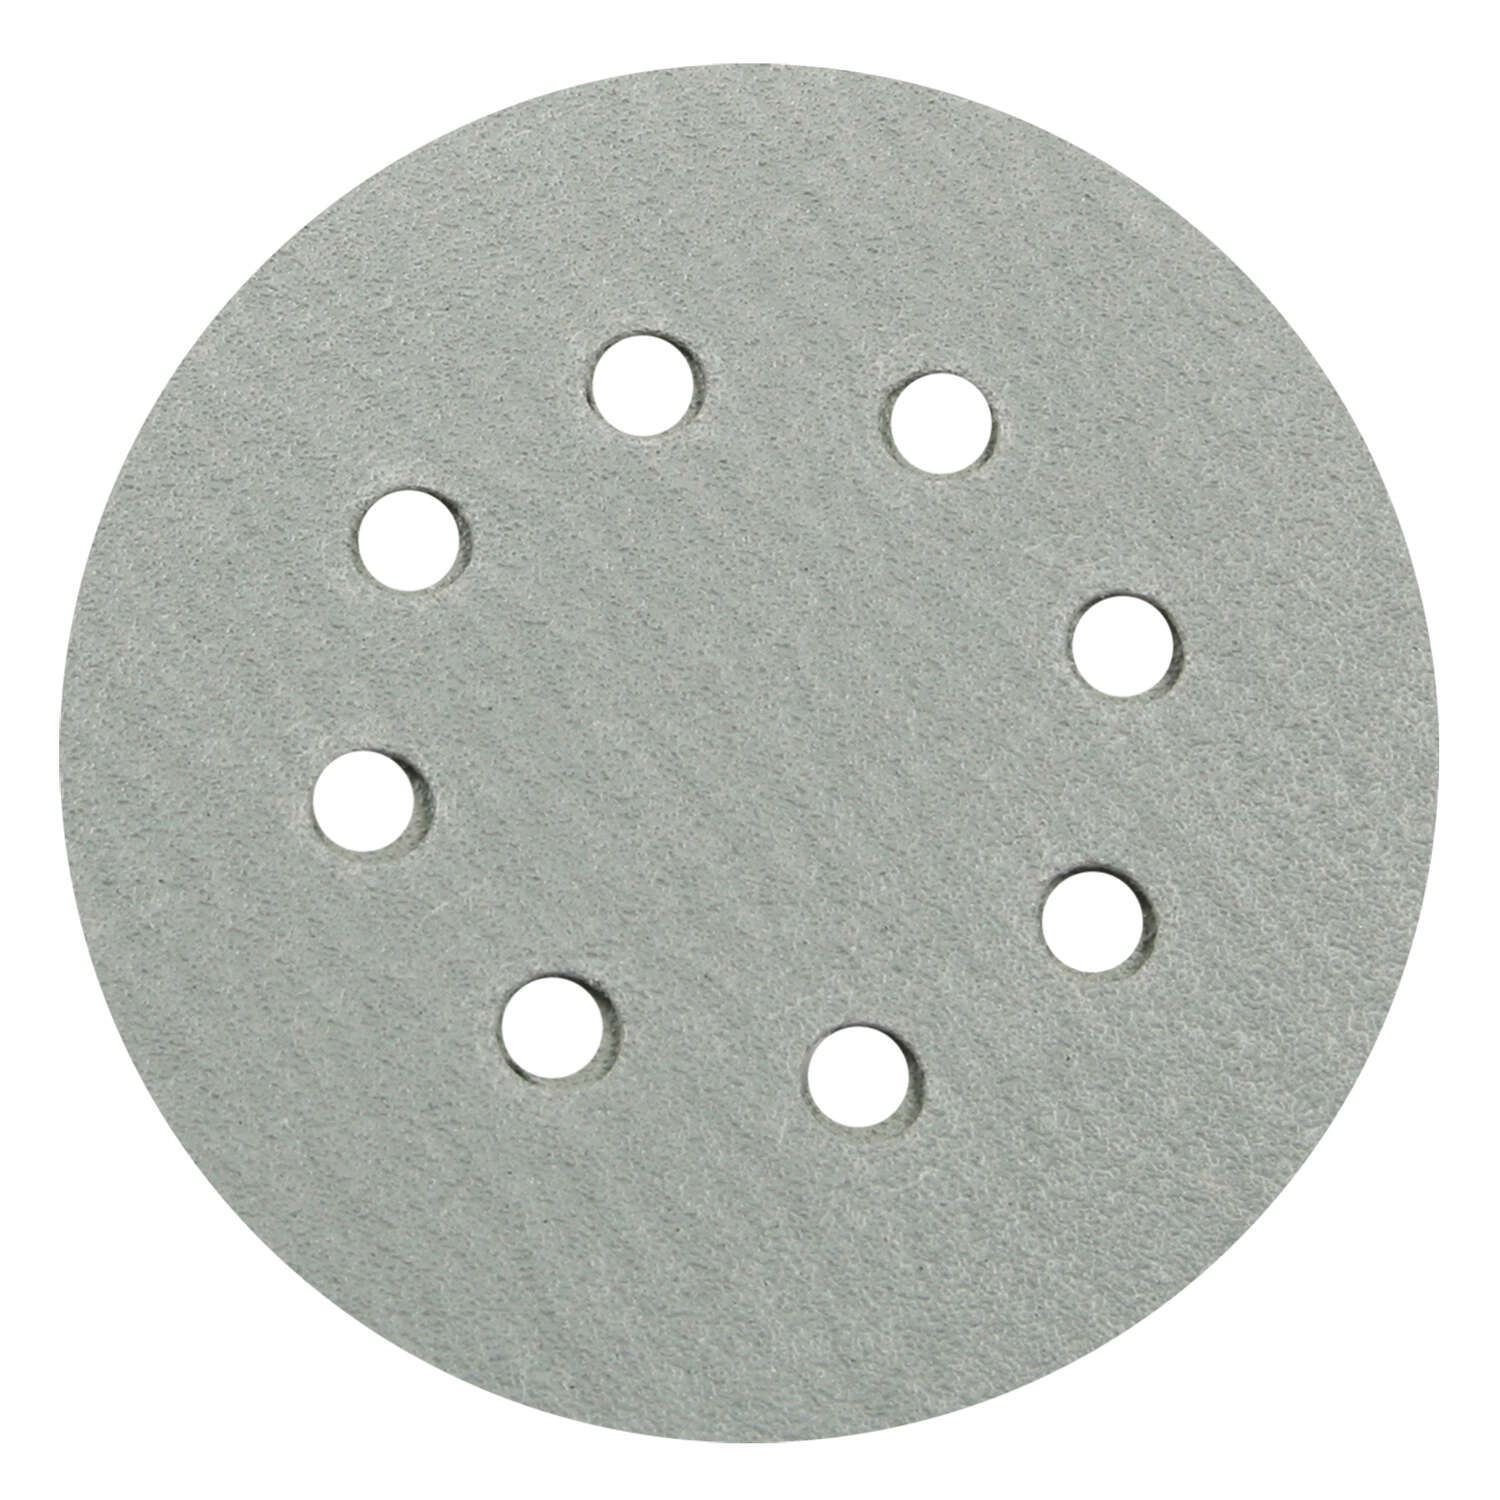 Shopsmith  5 in. Aluminum Oxide  Sanding Disc  Hook and Loop  15 pk Fine  180 Grit